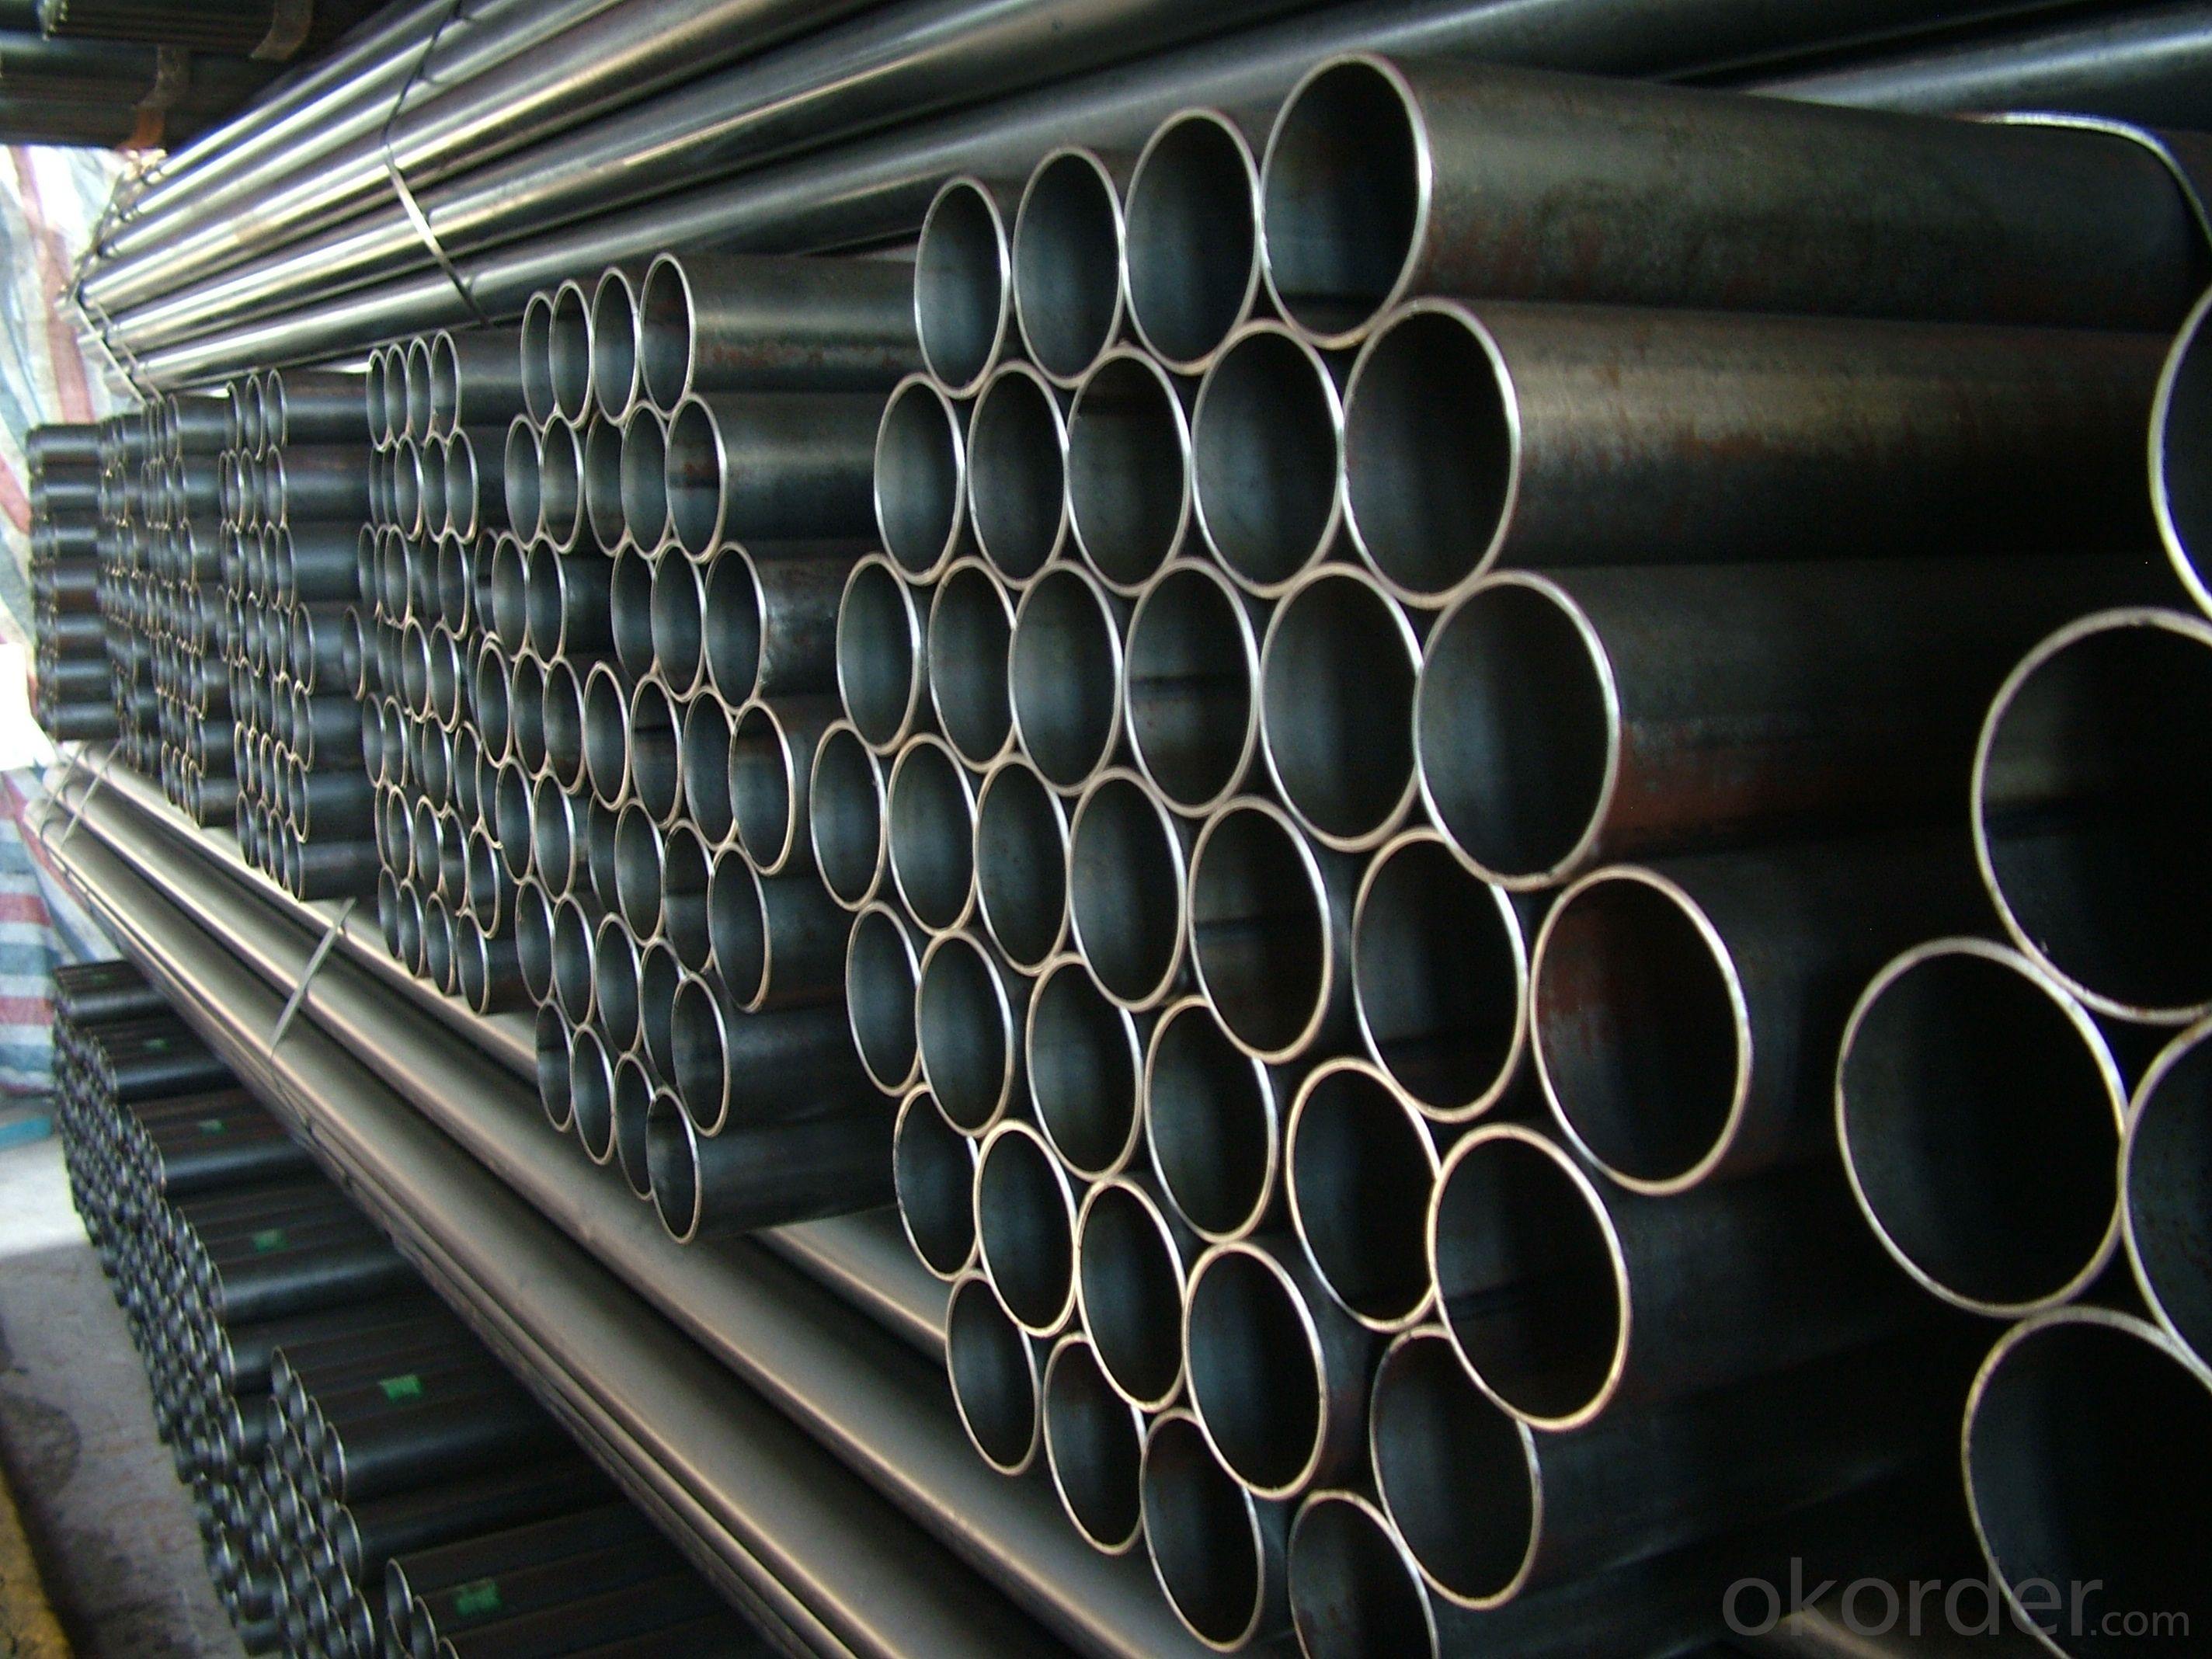 Drive shaft pipes for automobile industry